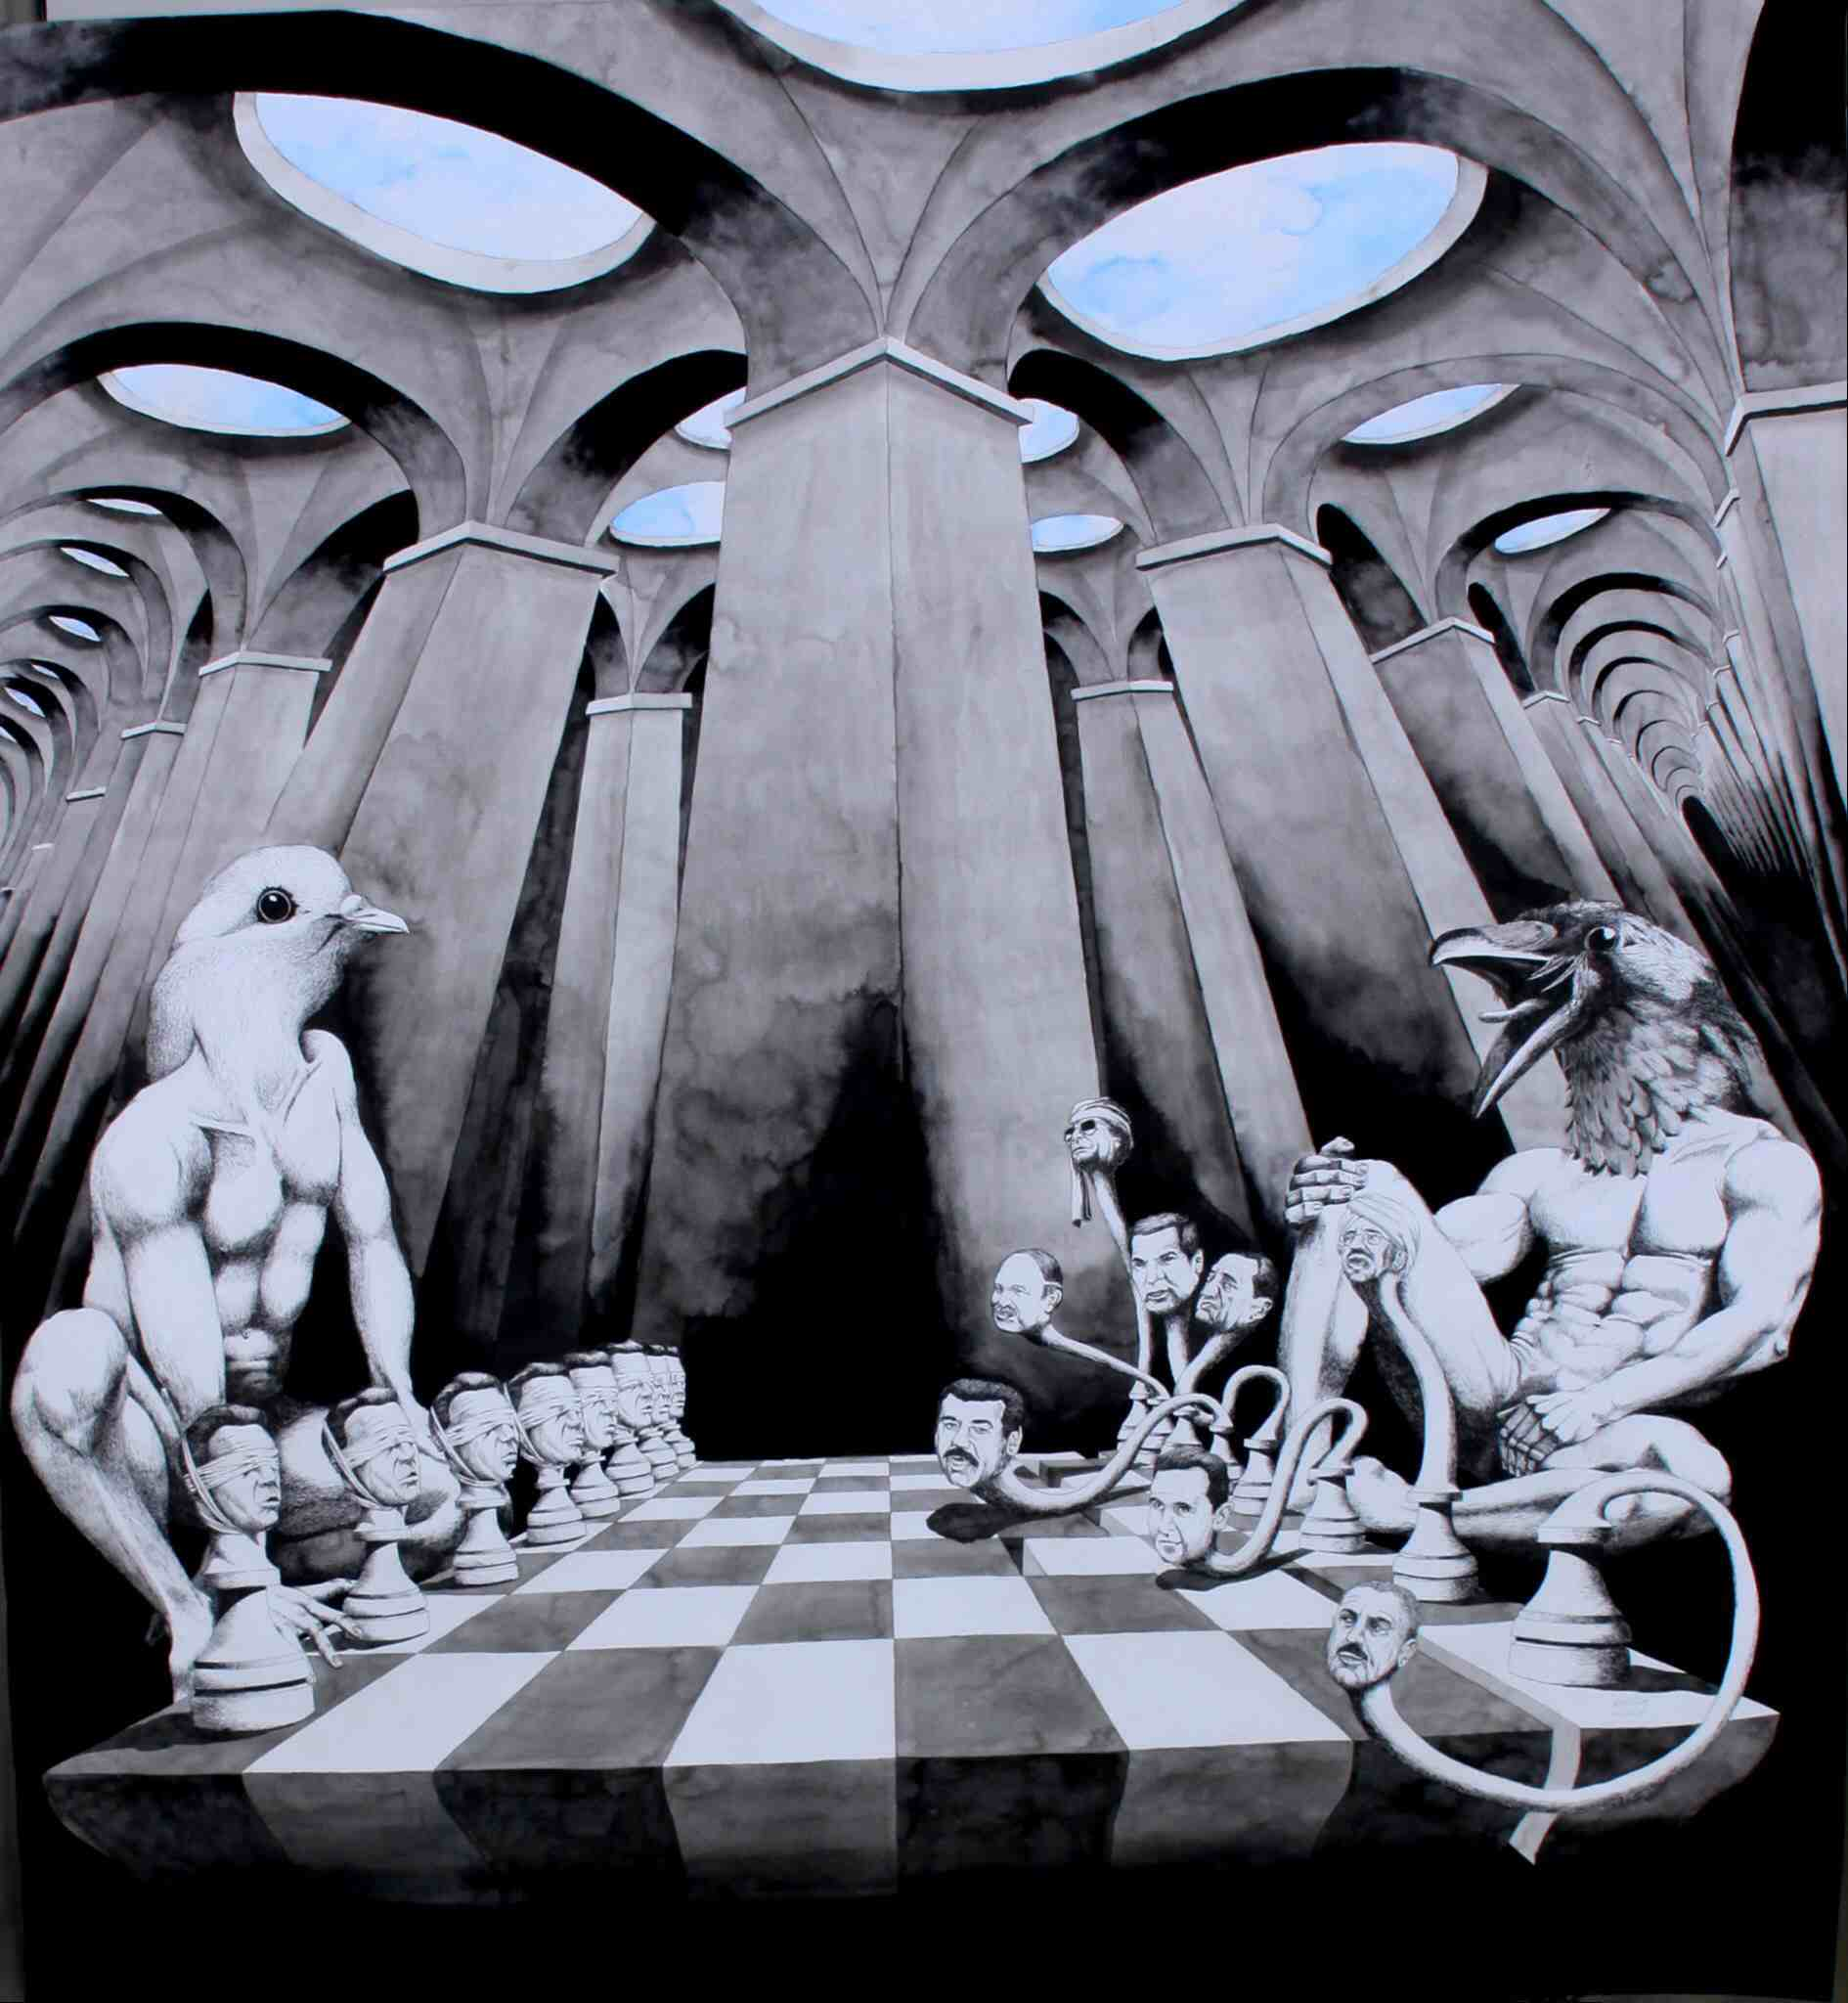 Arab Chess, 2015  Ink & gouache on paper 130 x 120 cm